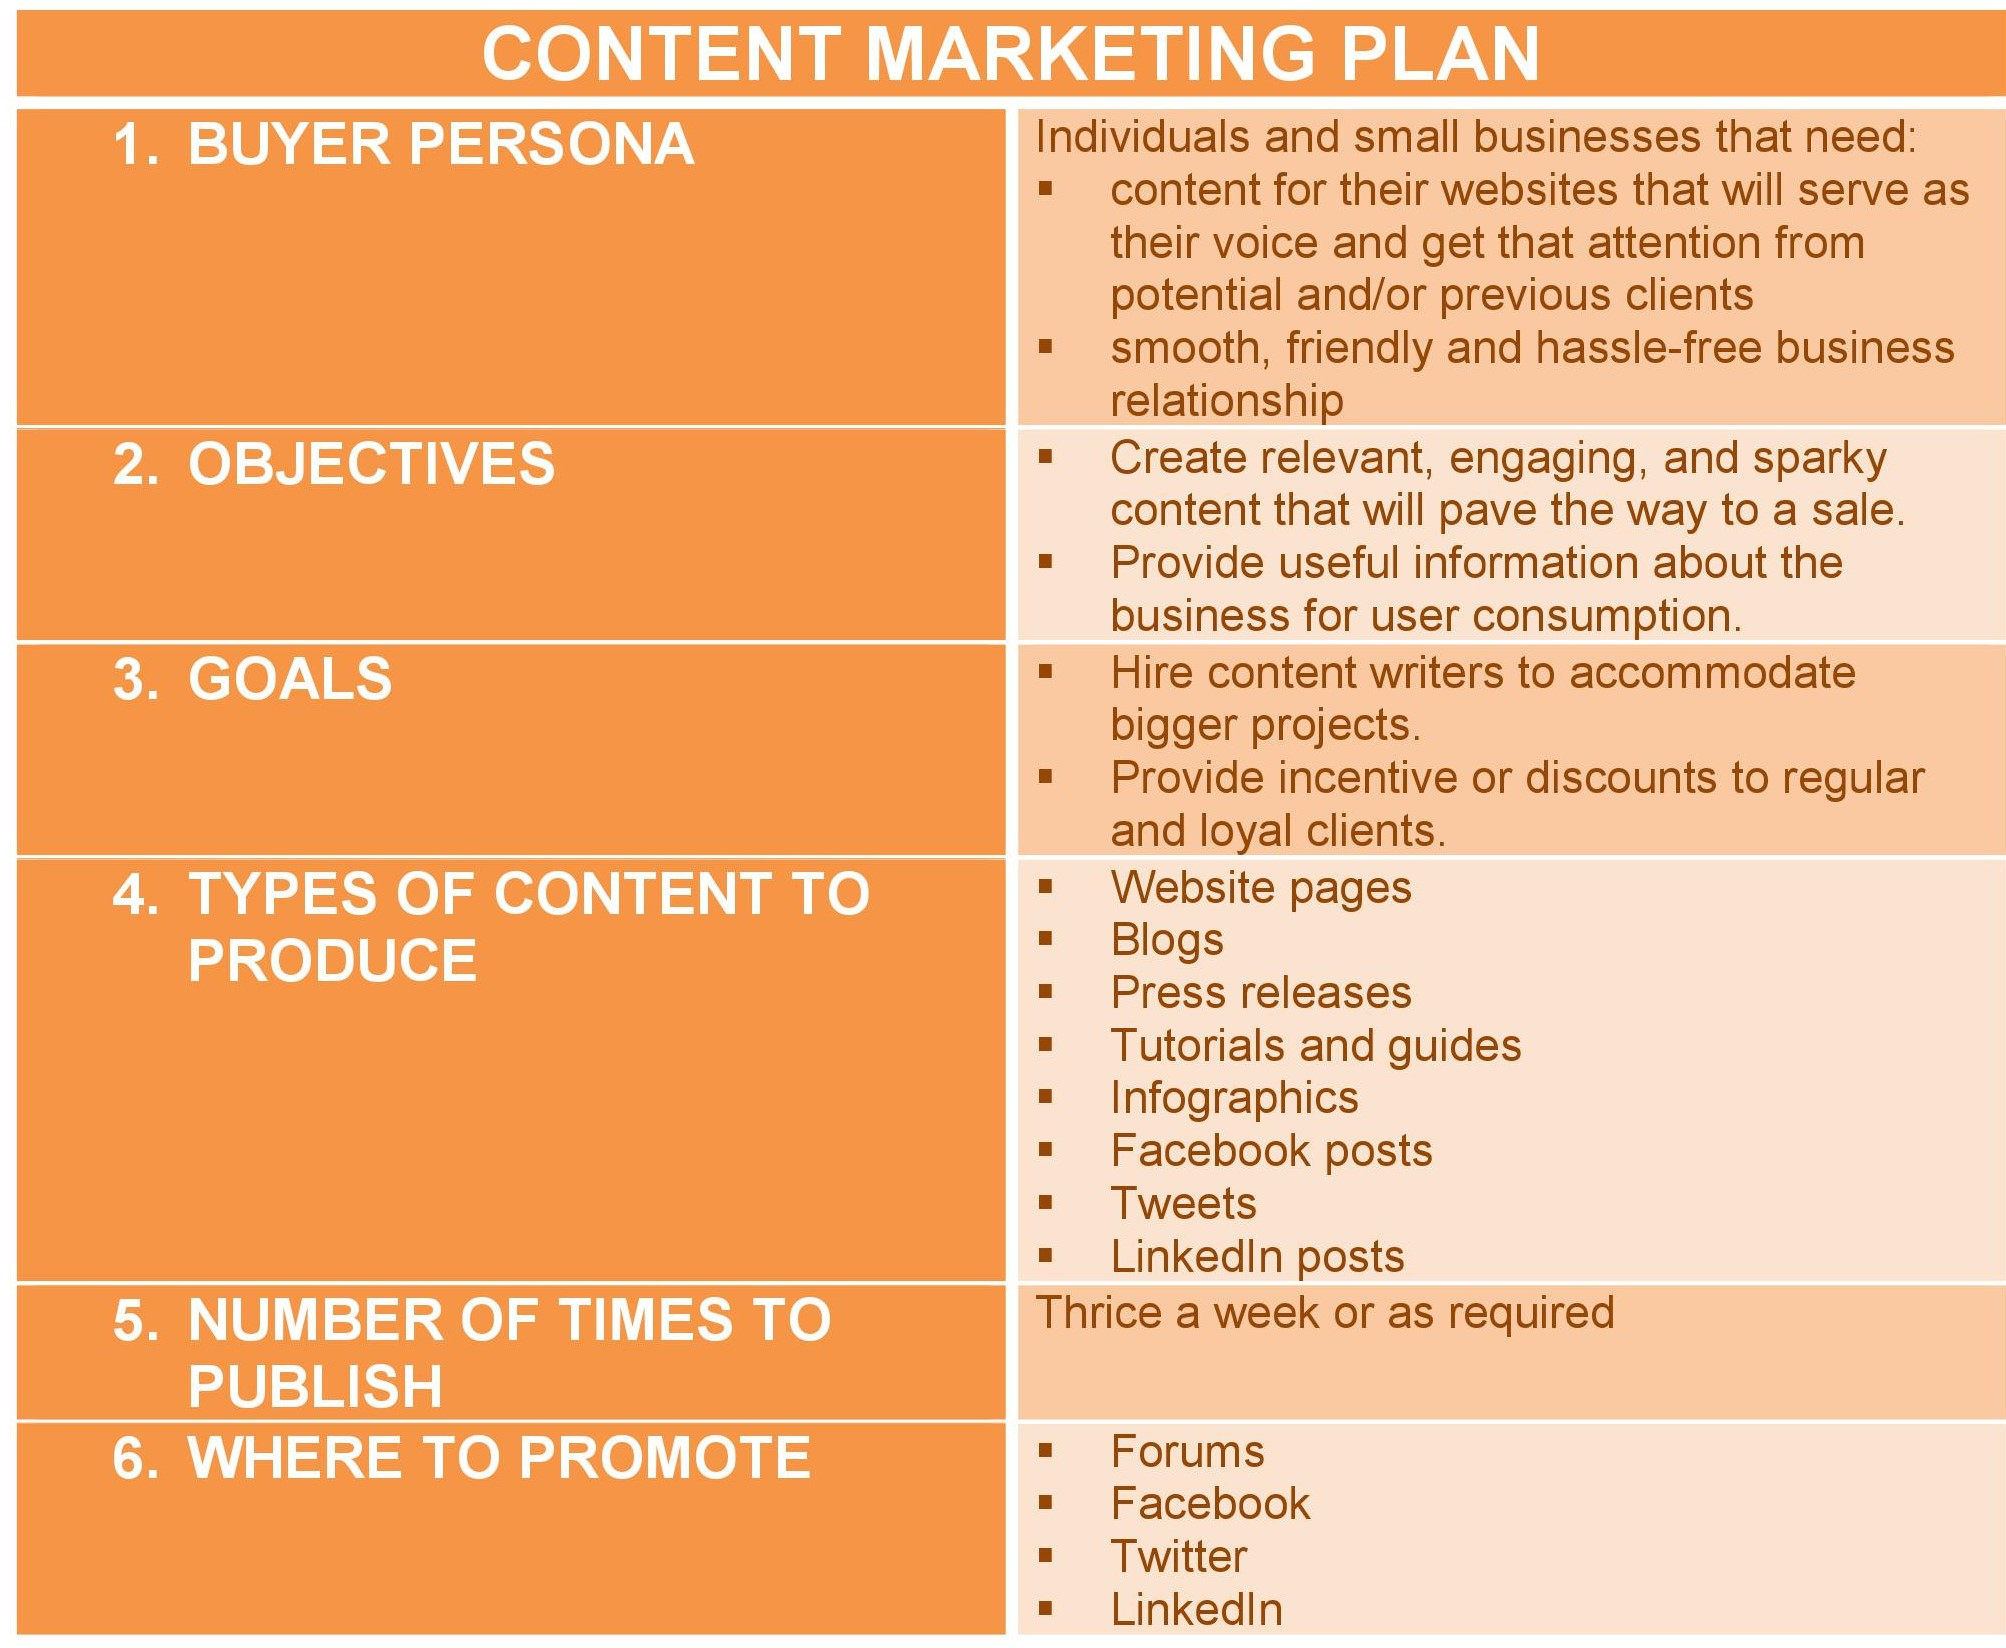 CONTENT MARKETING PLAN 2